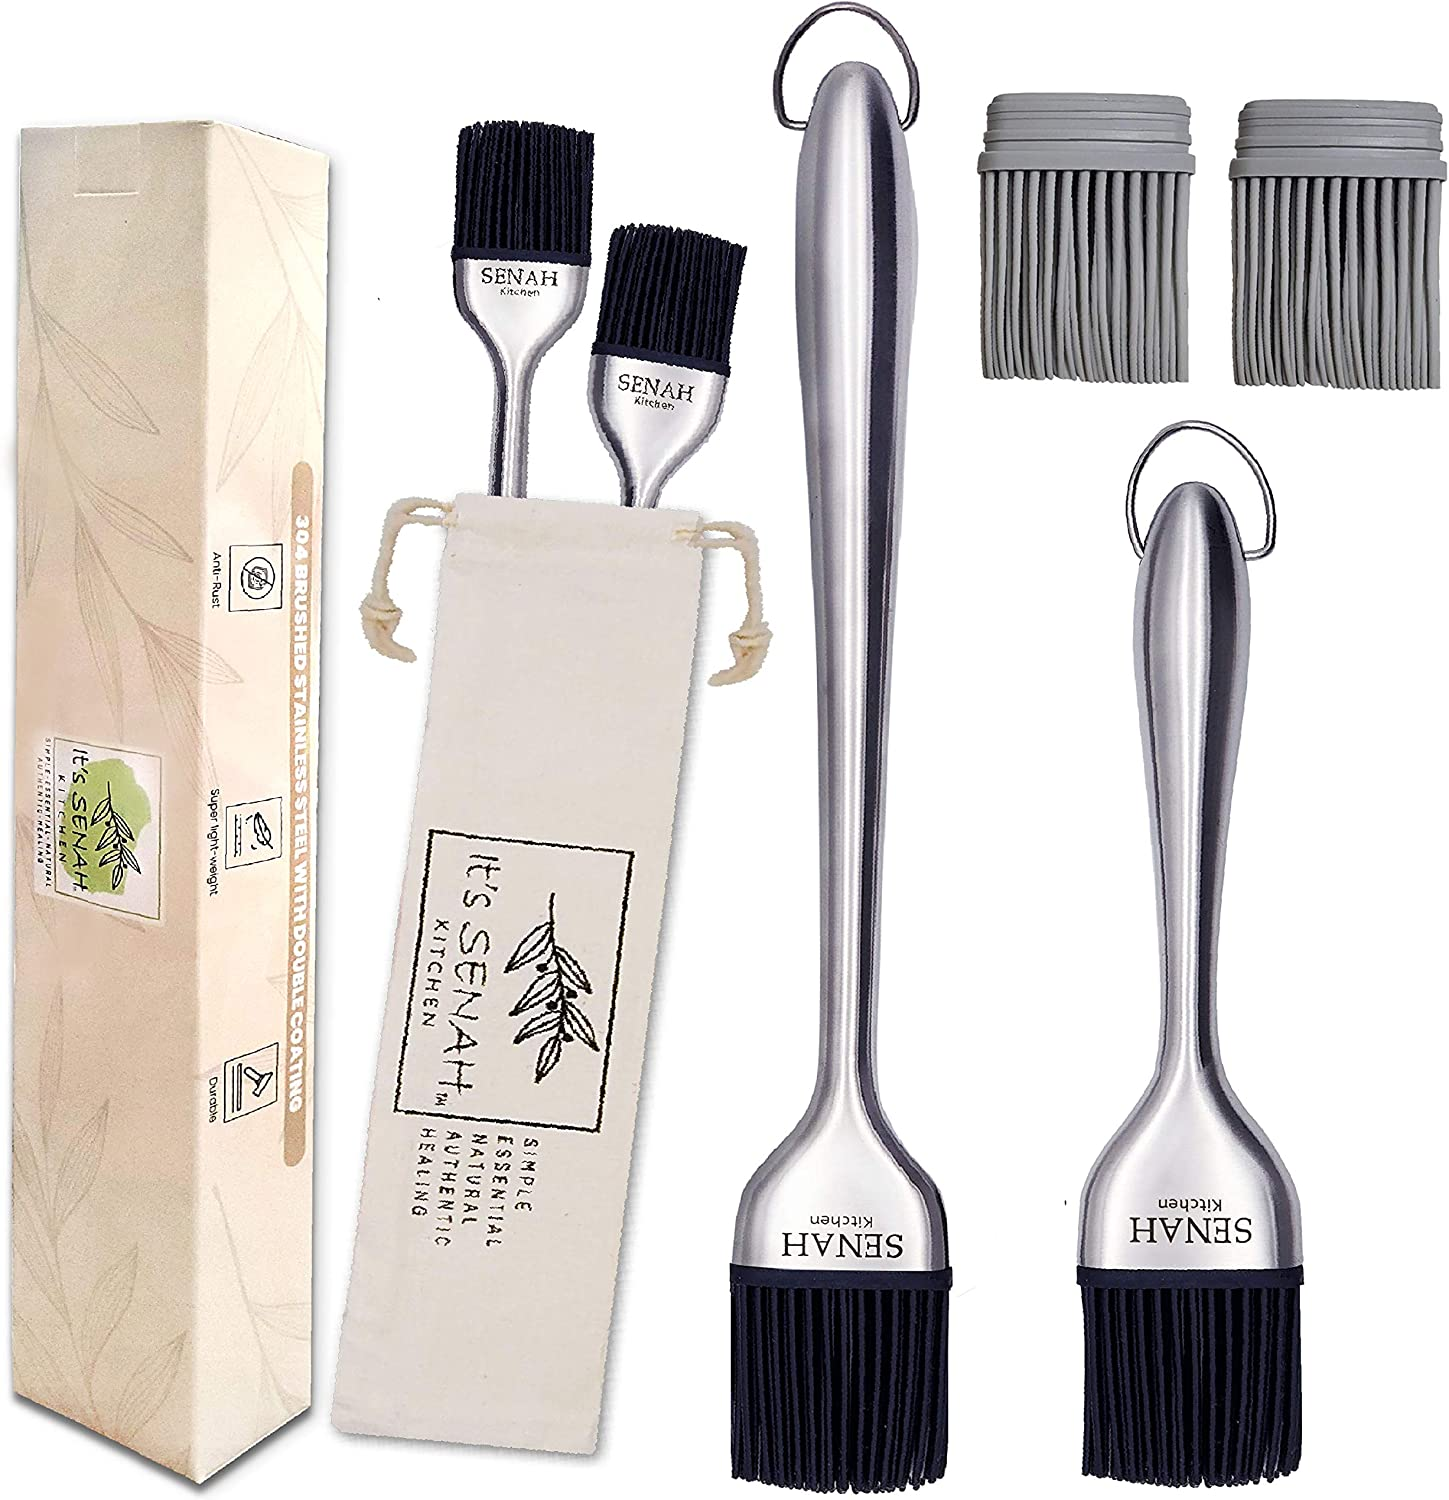 It's Senah | New 7pcs Bundle | 304-Stainless Steel BBQ Grill Basting Brush with 100% Natural, DUST-Free Cotton Storage Bag, Easy Grip Handle Oil Brush, Anti-Rush Baking, Pastry Cooking Brushes